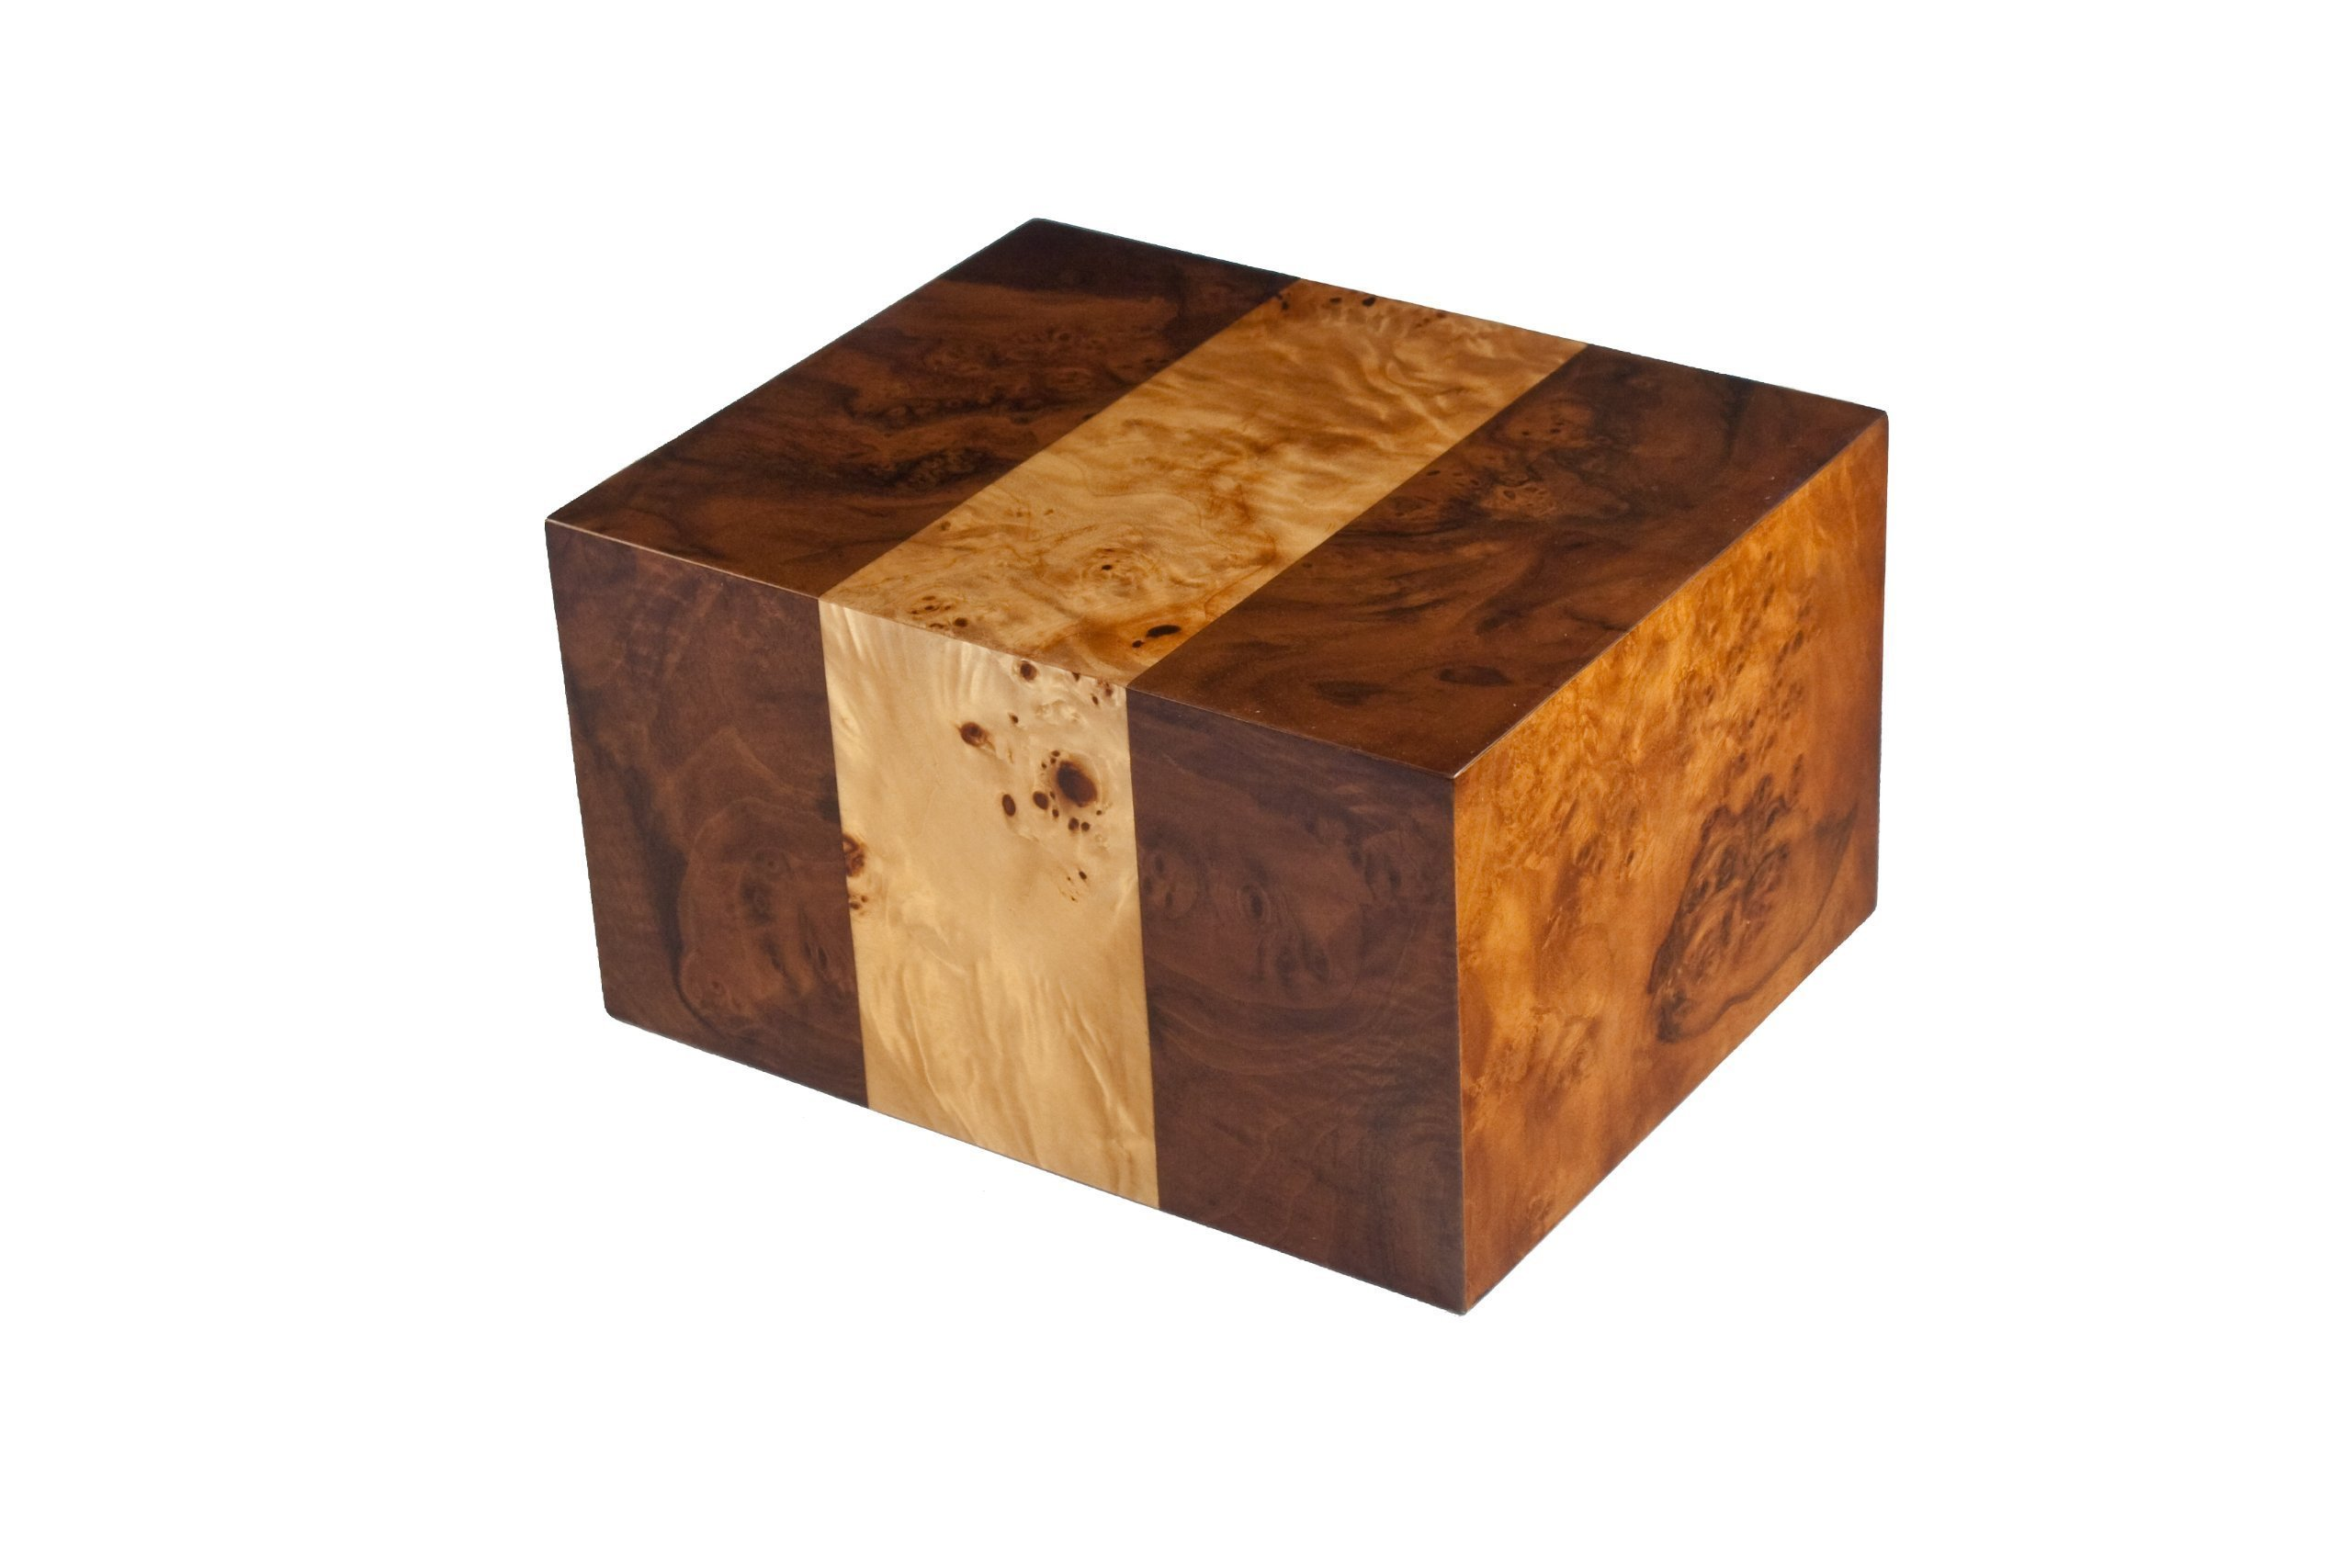 Chateau Urns in Maple Burl wood urn with Walnut Side Inlays, Adult Cremation Urn, Large